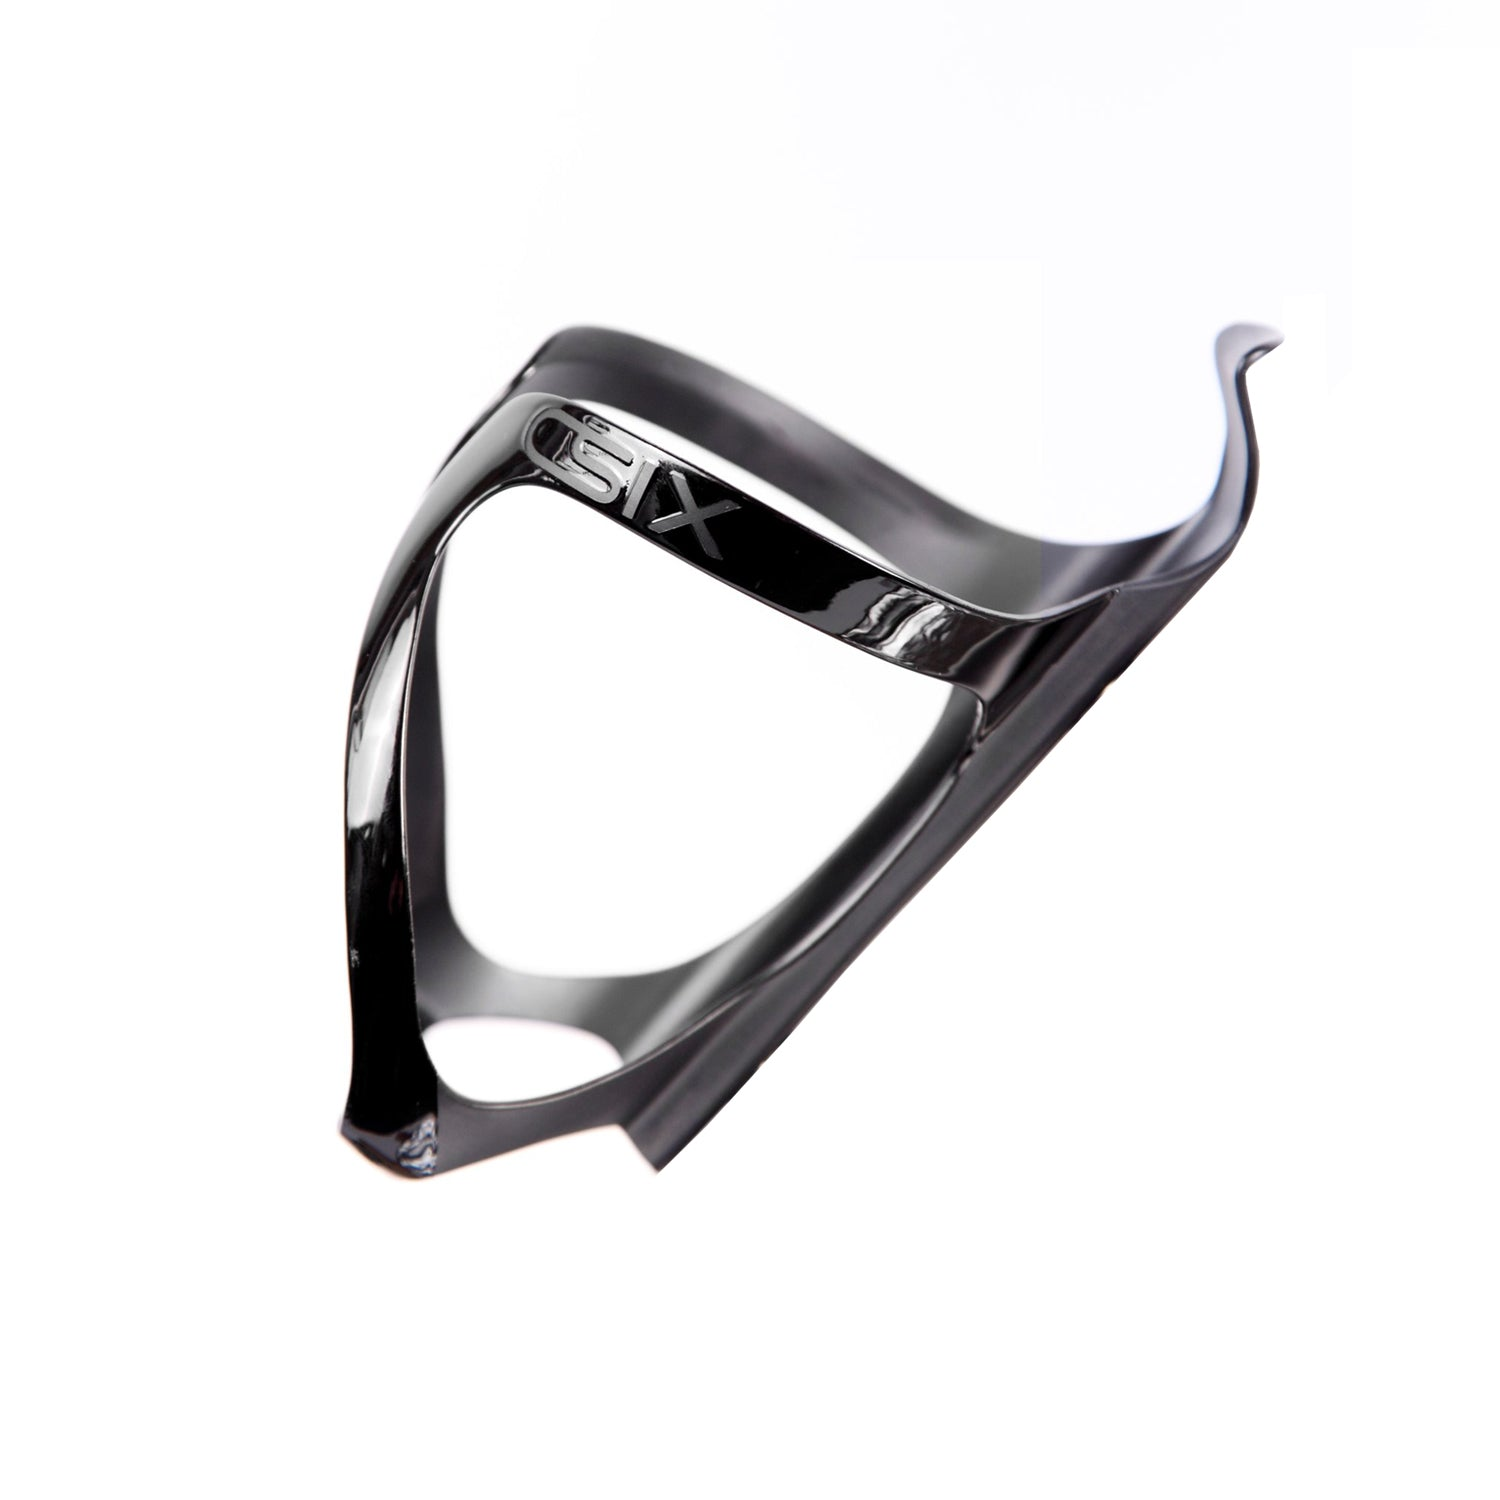 C-Six Carbon Bottle Cage